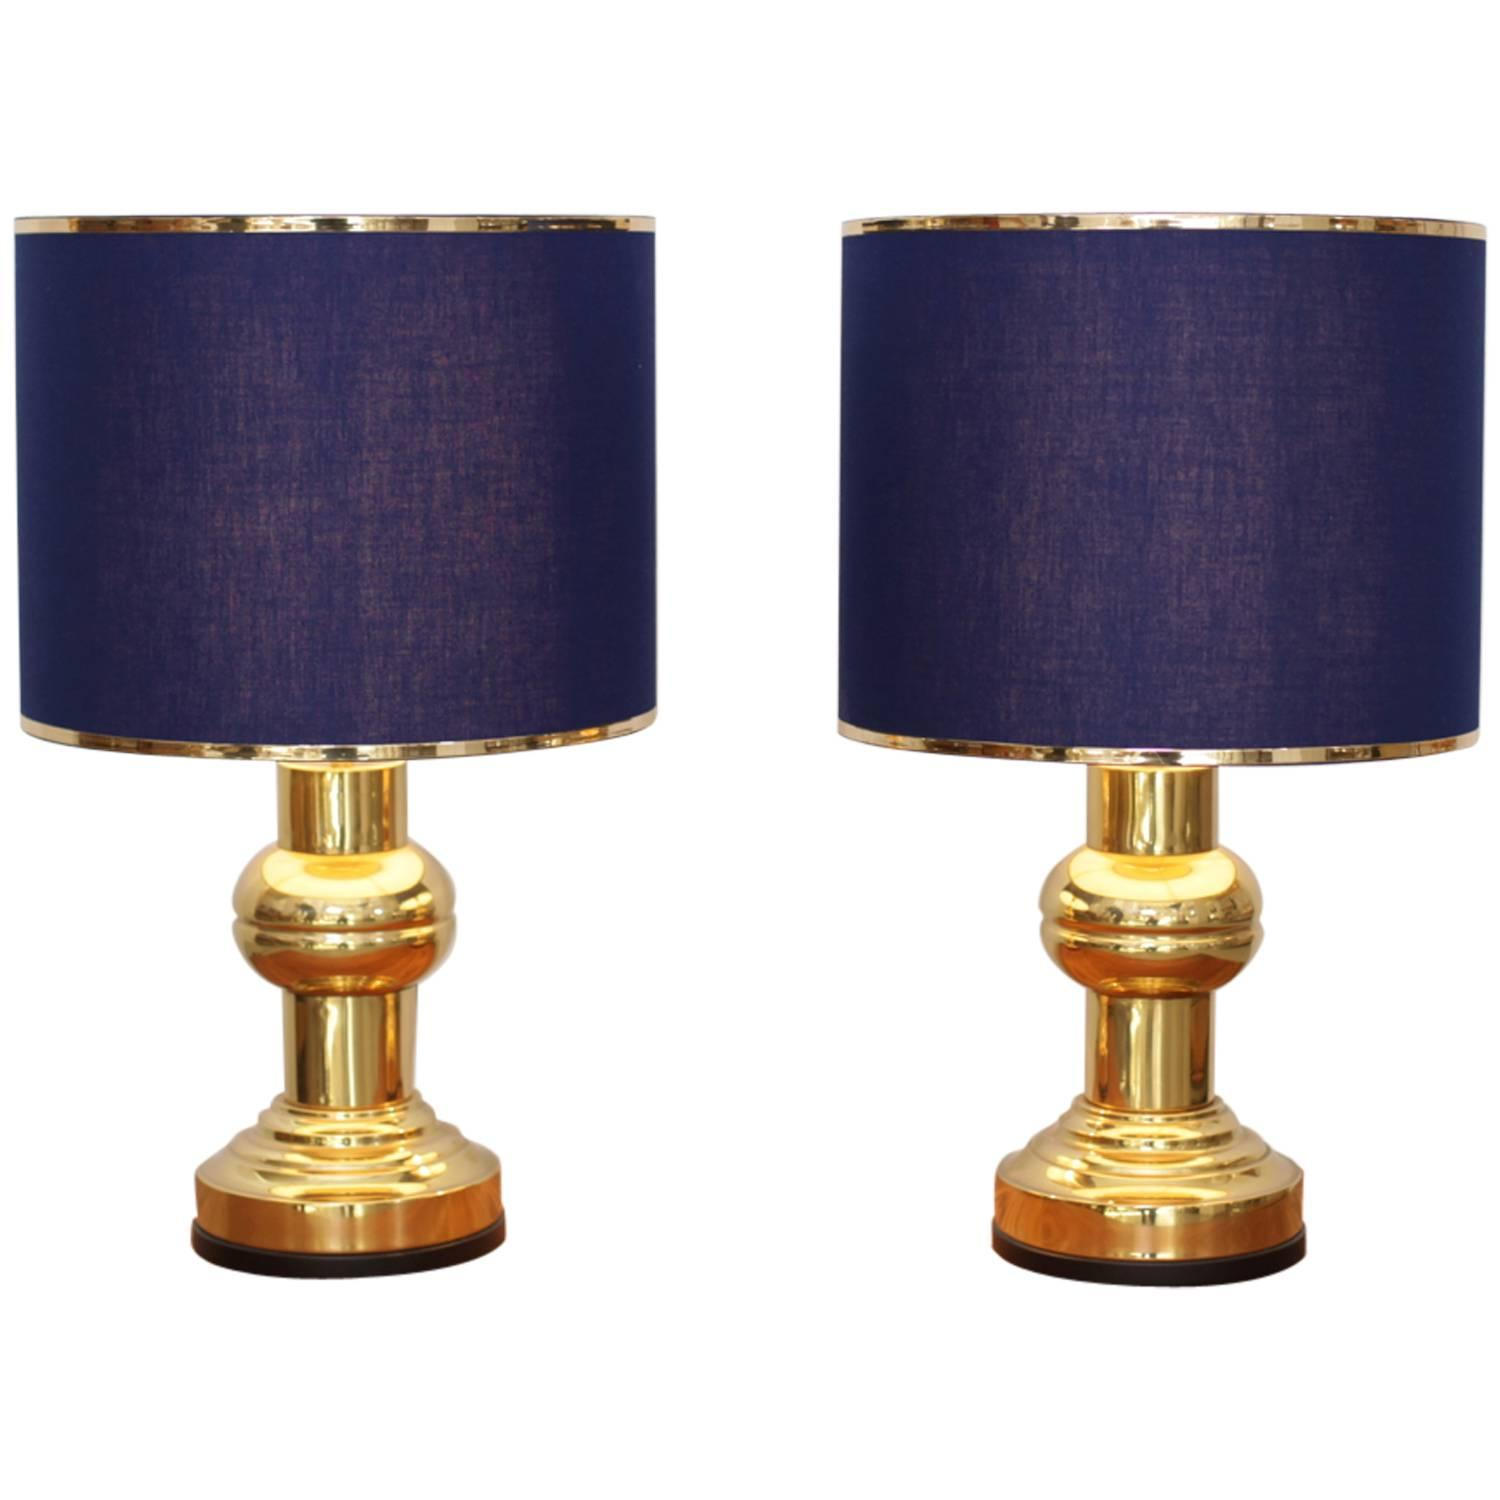 set of two art deco style table lamps in brass with dark. Black Bedroom Furniture Sets. Home Design Ideas